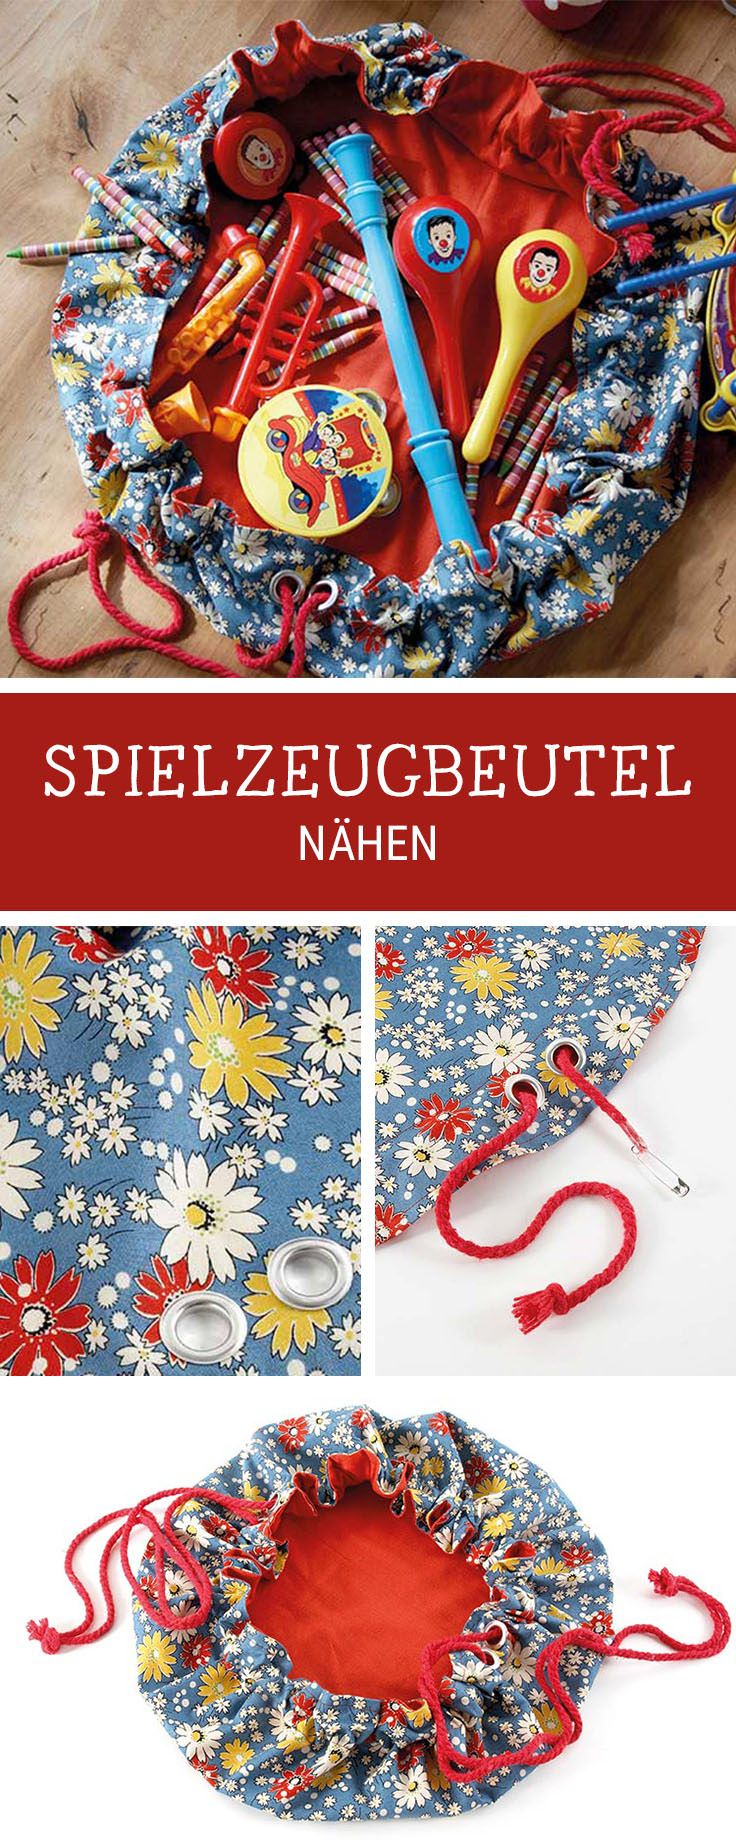 Praktische Spielzeugtasche nähen fürs Kinderzimmer, Ordnung schaffen / get rid of the chaos in the nursery: sewing pattern for an utensilo, toy bag via DaWanda.com